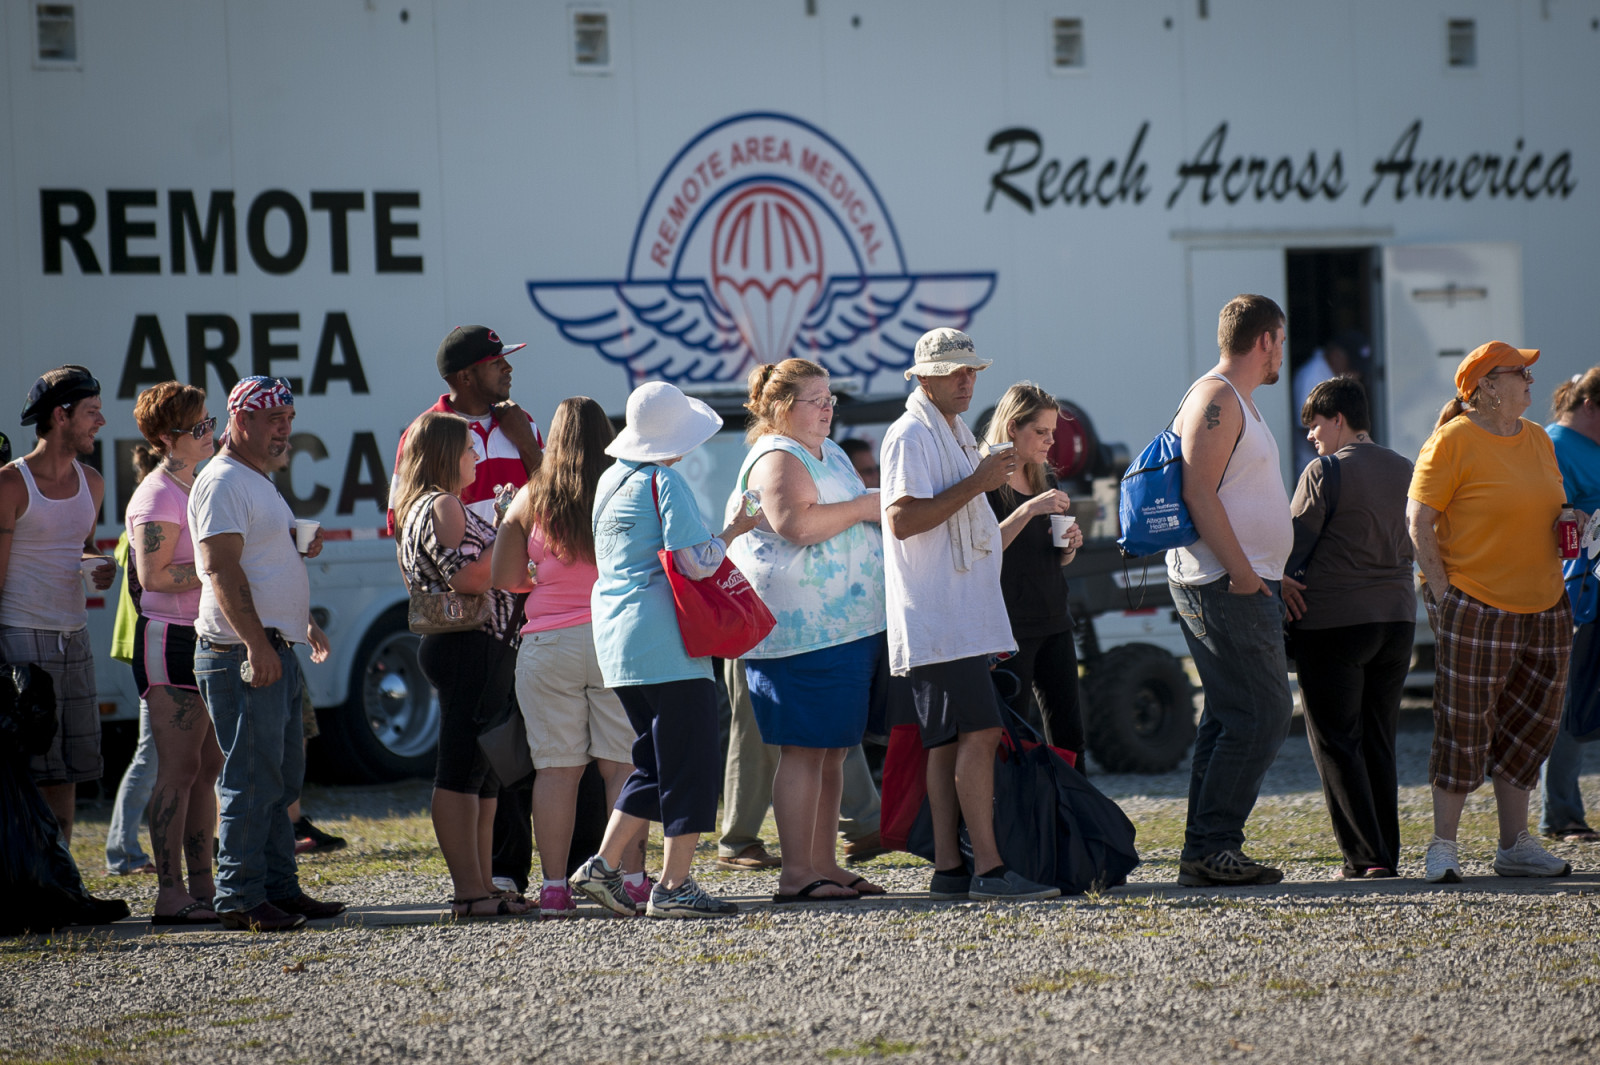 People stand in line to be processed in the triage tent at the 16th annual Remote Area Medical (RAM), clinic in Wise, Virginia, U.S., on Friday, July 17, 2015. Photo: Pete Marovich/Bloomberg